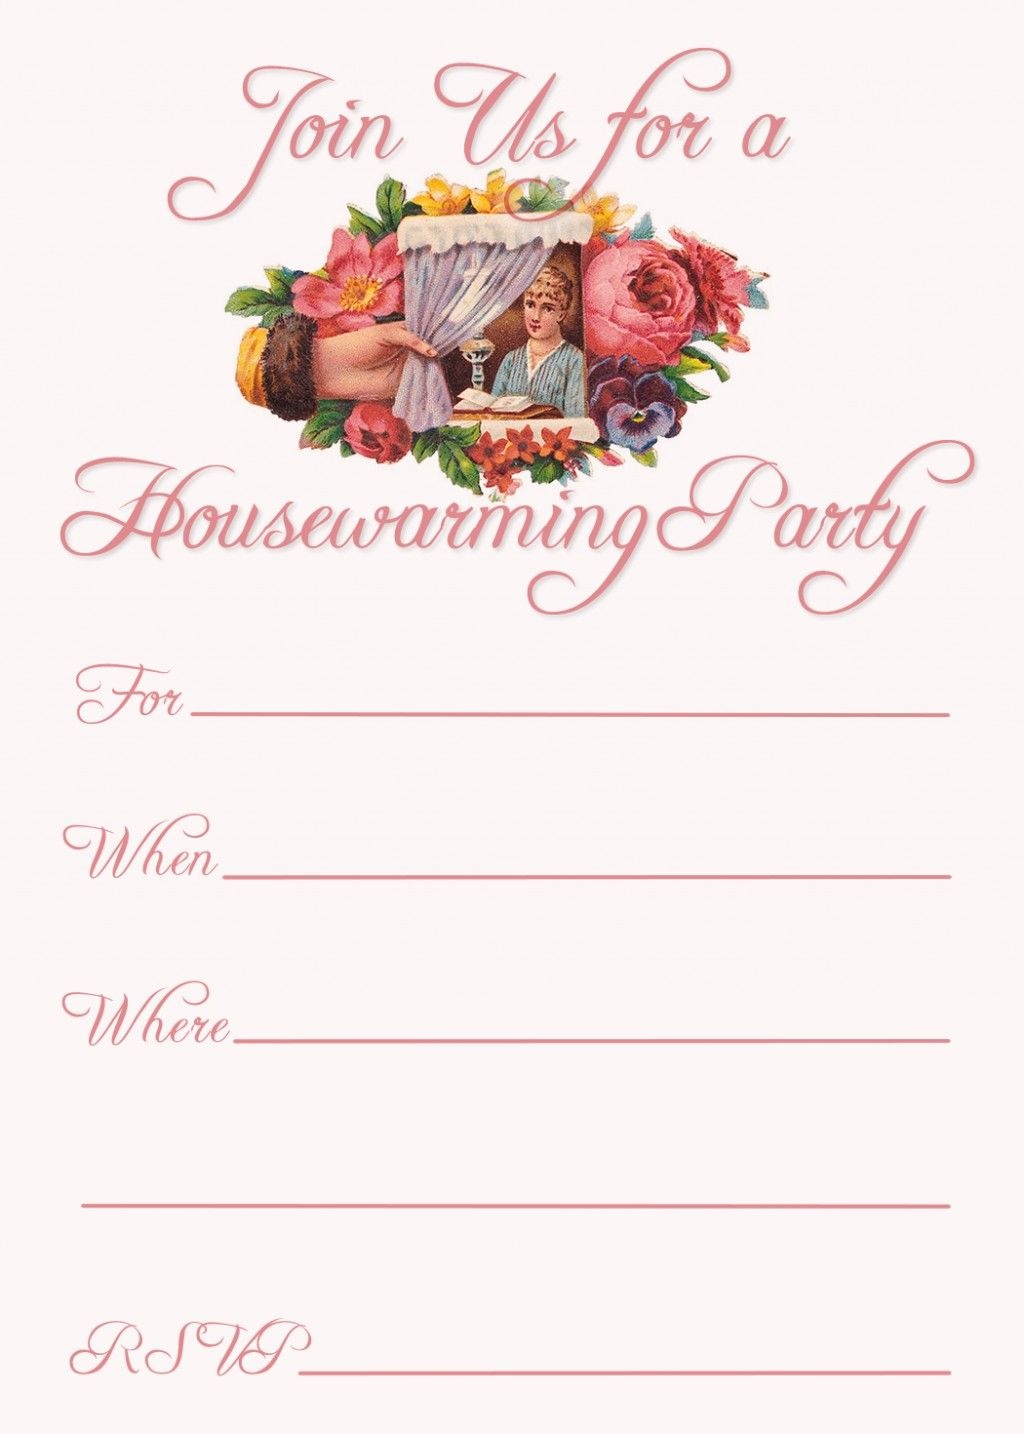 Free Printable Housewarming Party Invitations | Housewarming - Free Printable Housewarming Invitations Cards